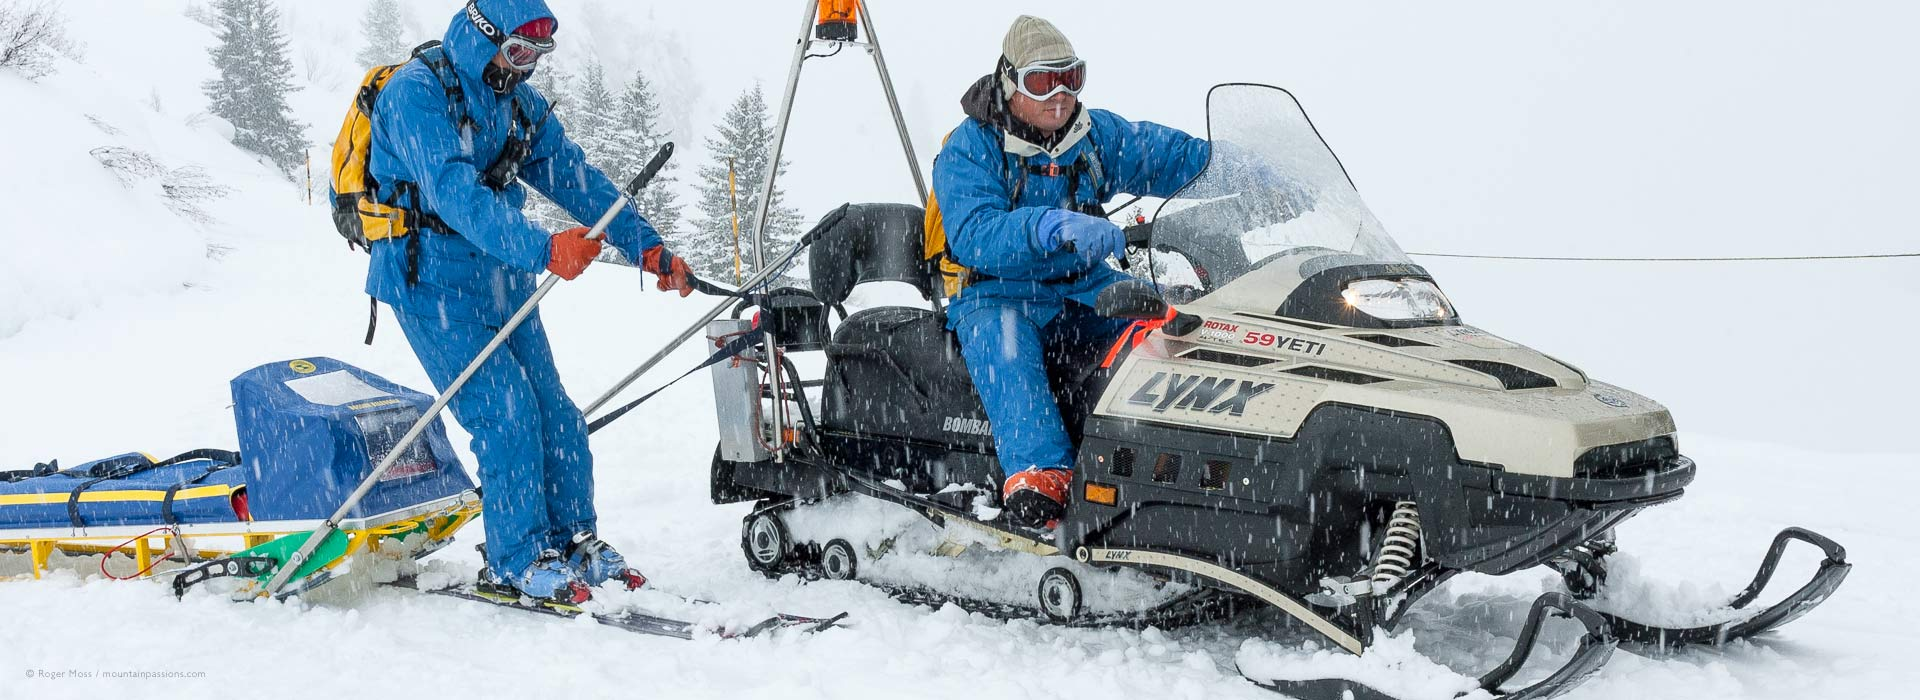 Behind the scenes ski patrol team with snowmobile practice with an accident recovery sled